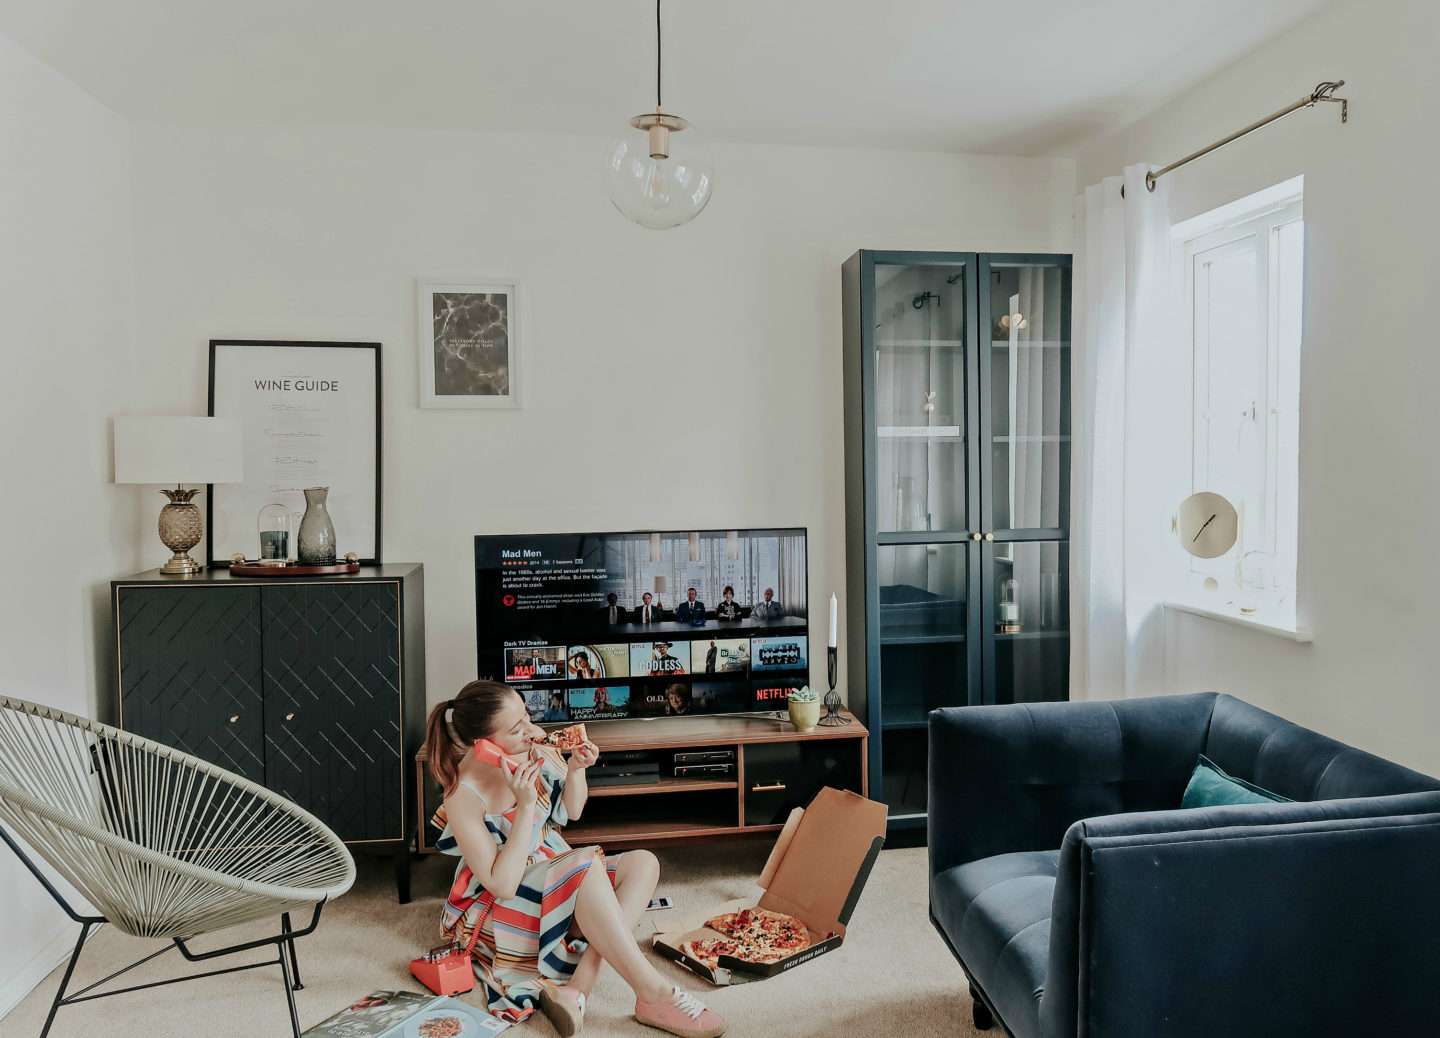 How Can We Decorate Our Home Fascinating How Can We Decorate Our Living Room Photos